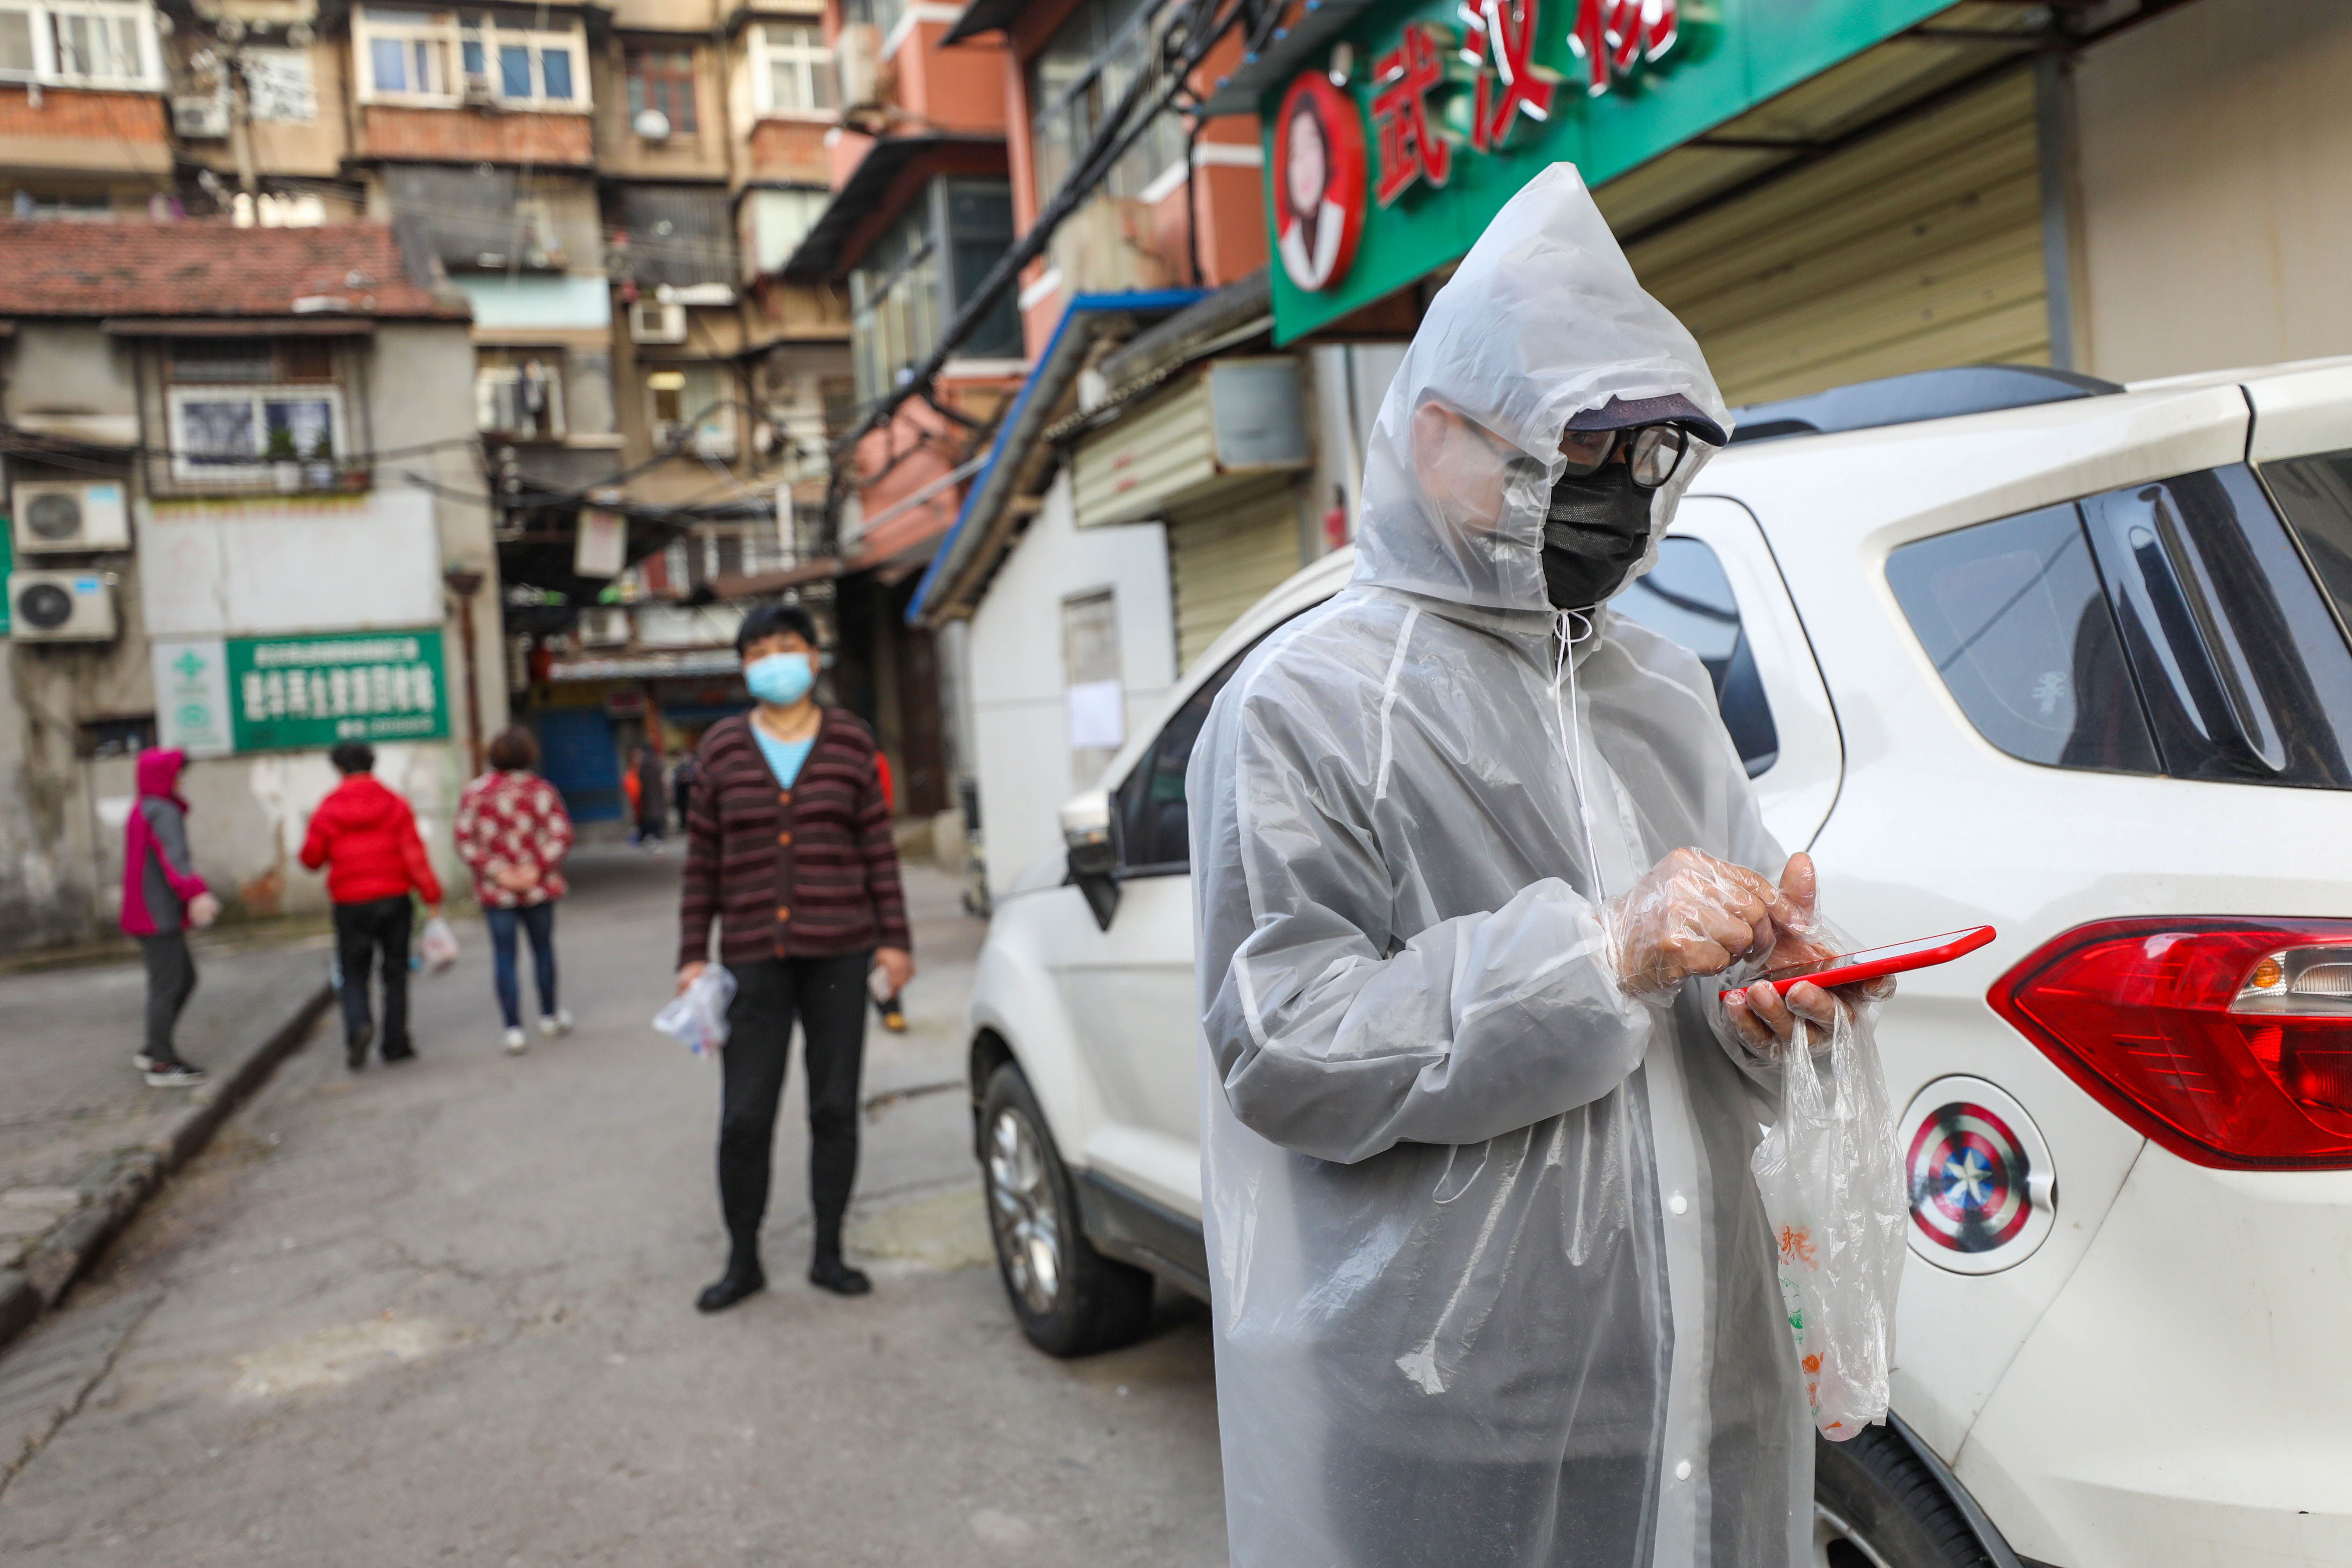 A resident dressed in a protective suit lines up with others to pick up pork which was delivered to their quarantined compound in Wuhan, in China's central Hubei province on March 18.